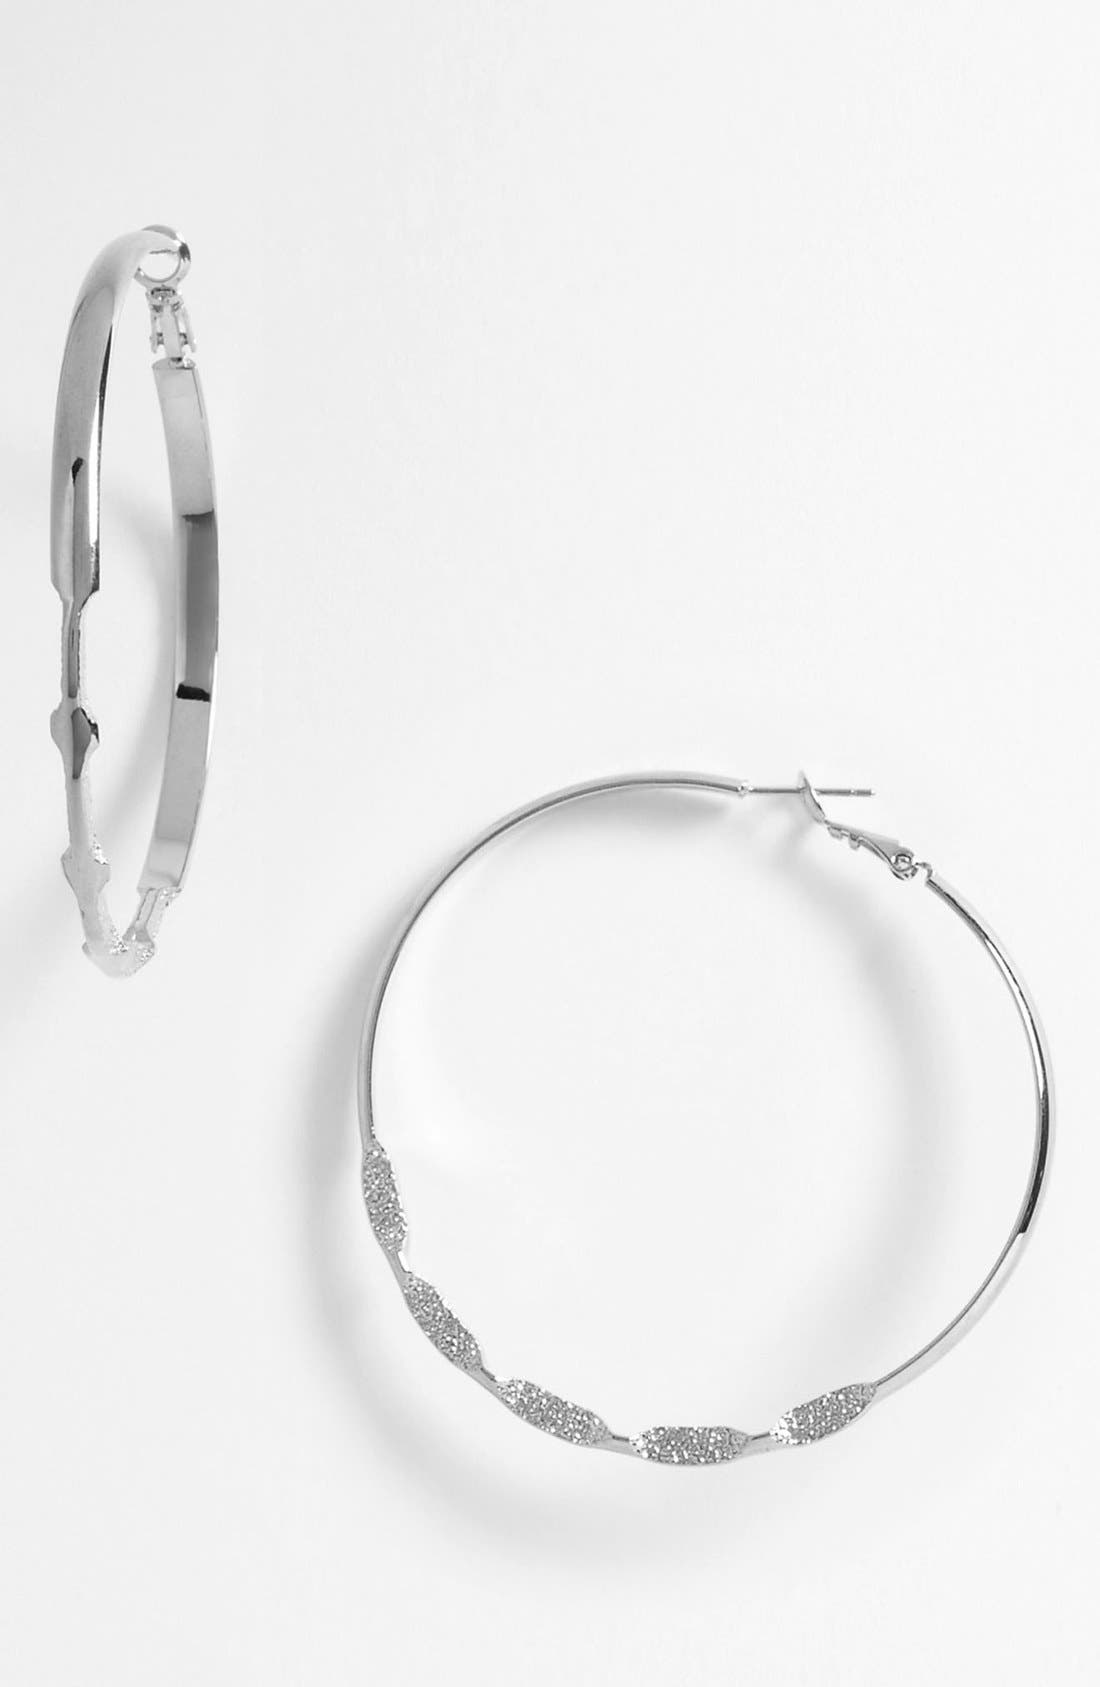 Main Image - Natasha Couture Etched Hoop Earrings